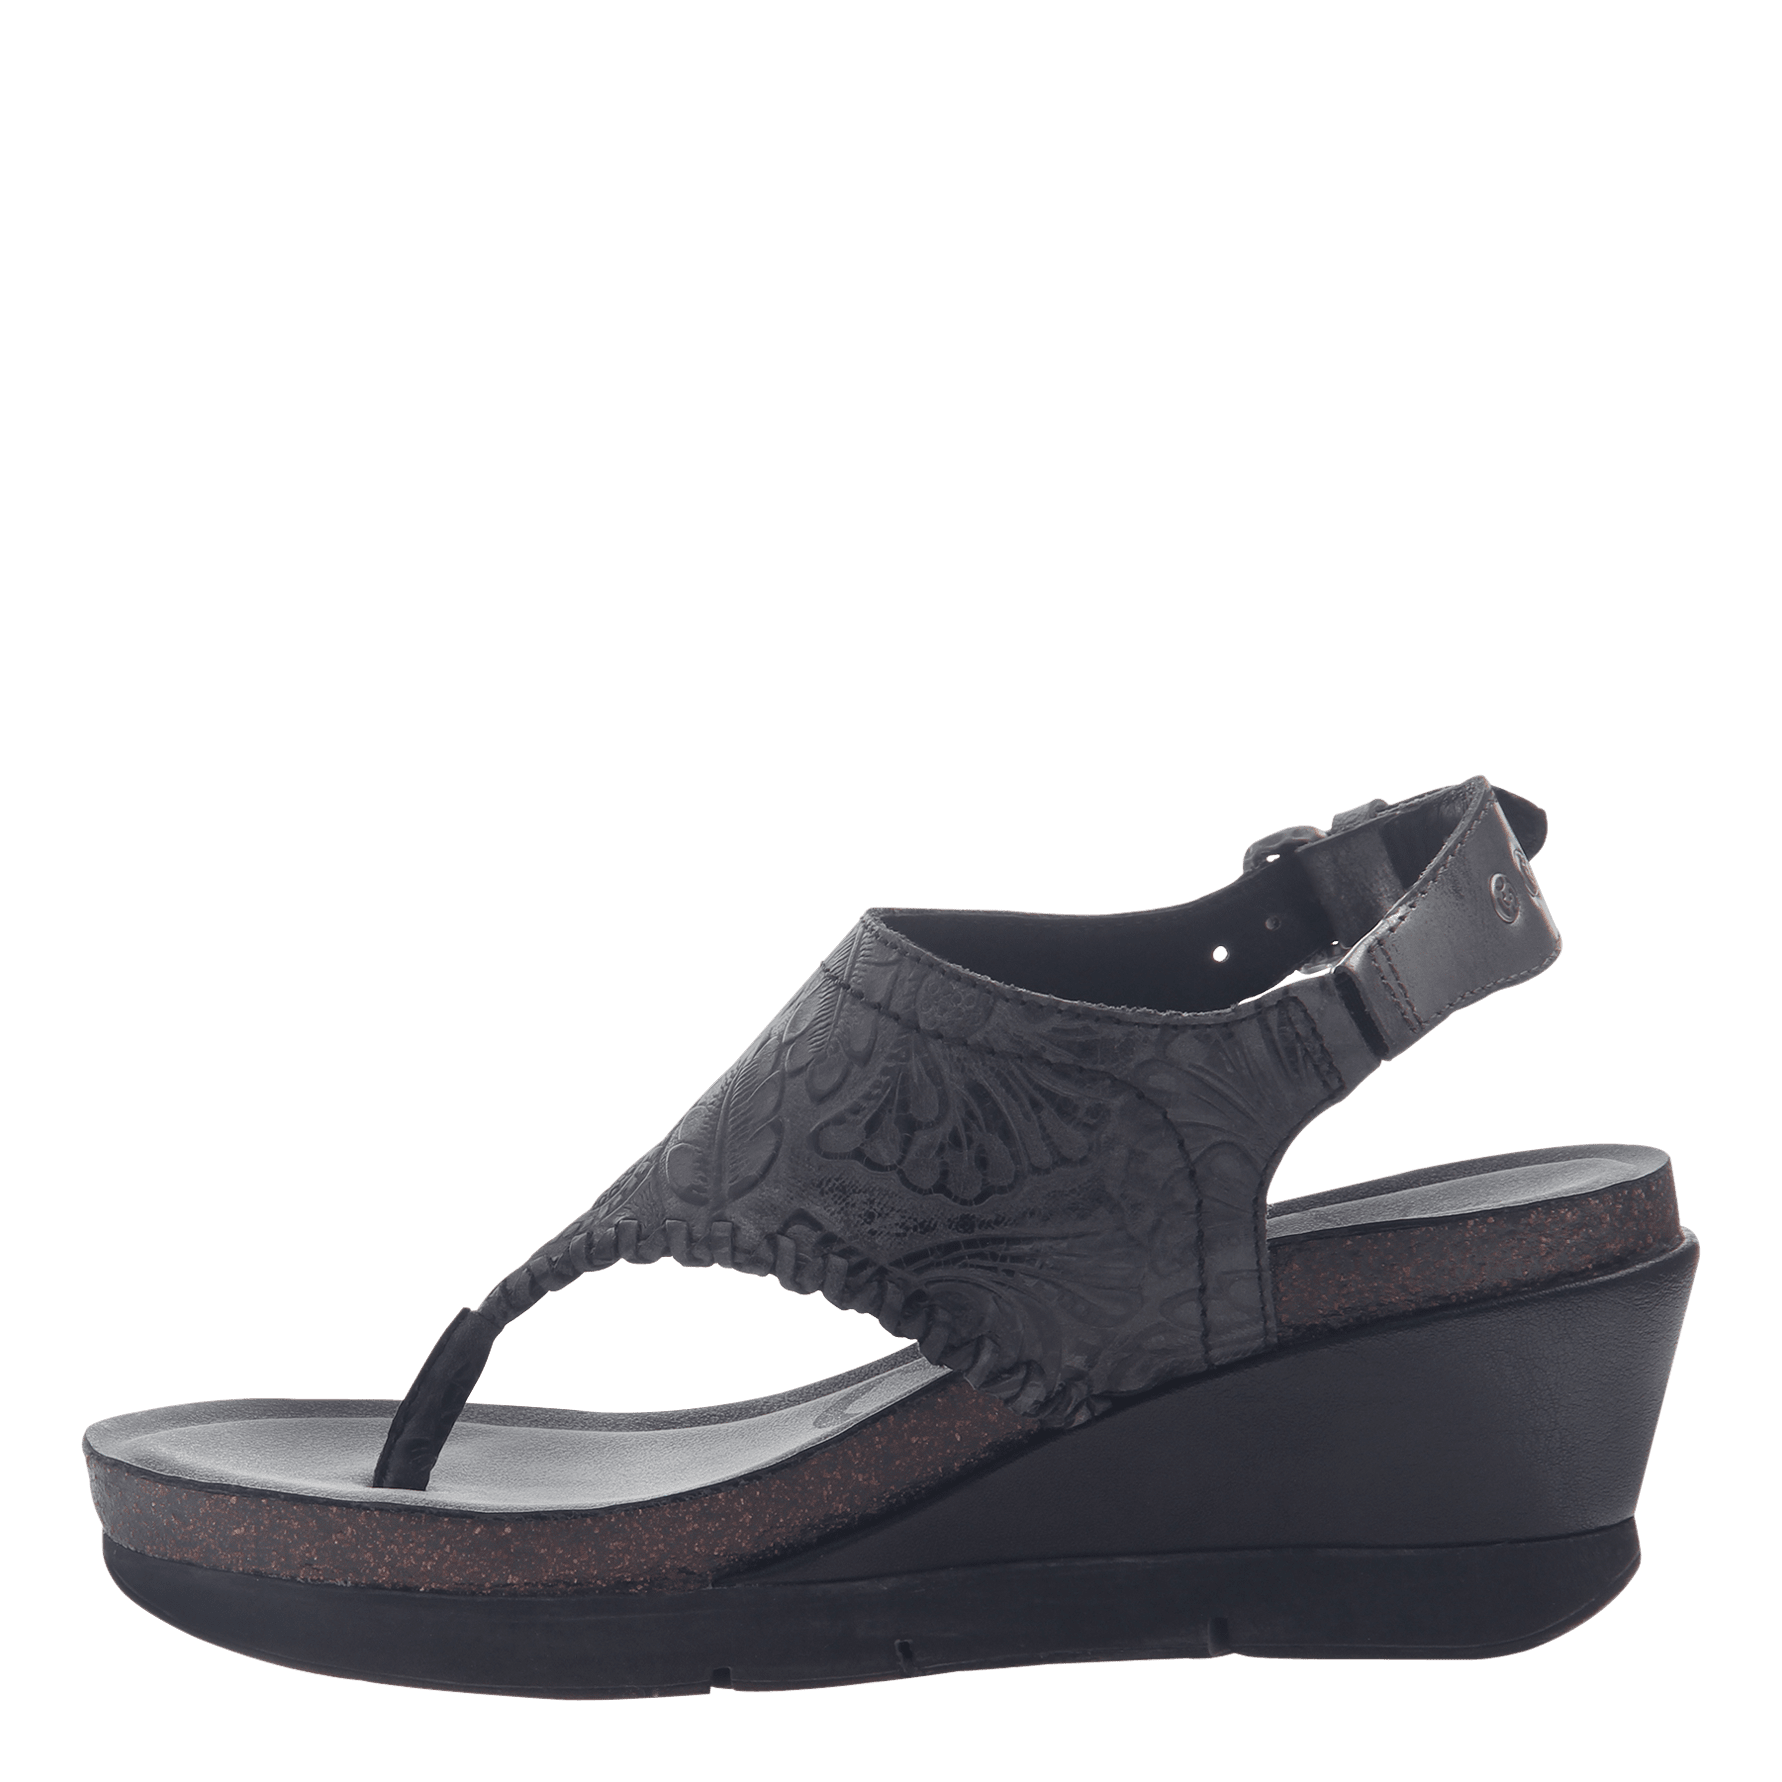 Otbt In Meditate SandalsWomen's Wedge Shoes By Black f6vYgy7b